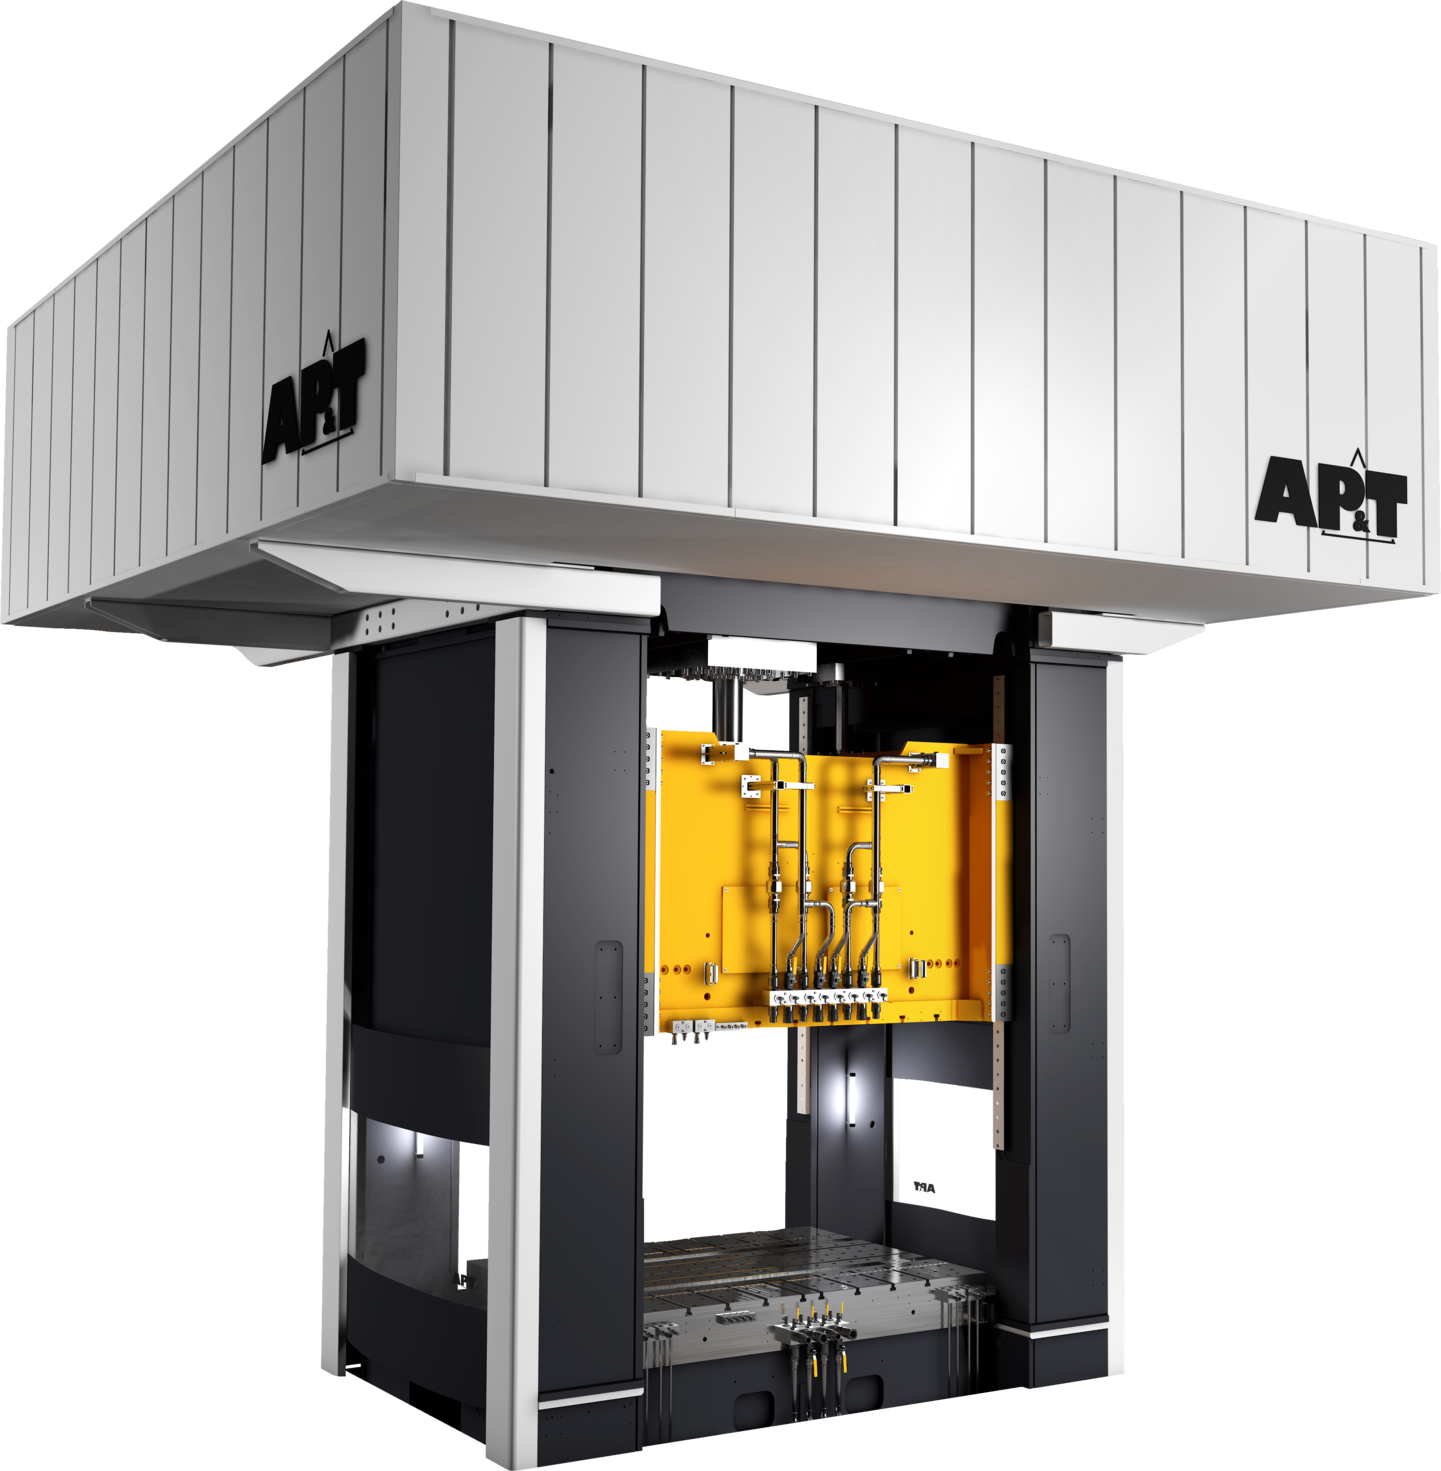 New innovation from AP&T: Servo hydraulic press with high performance and half the energy consumption